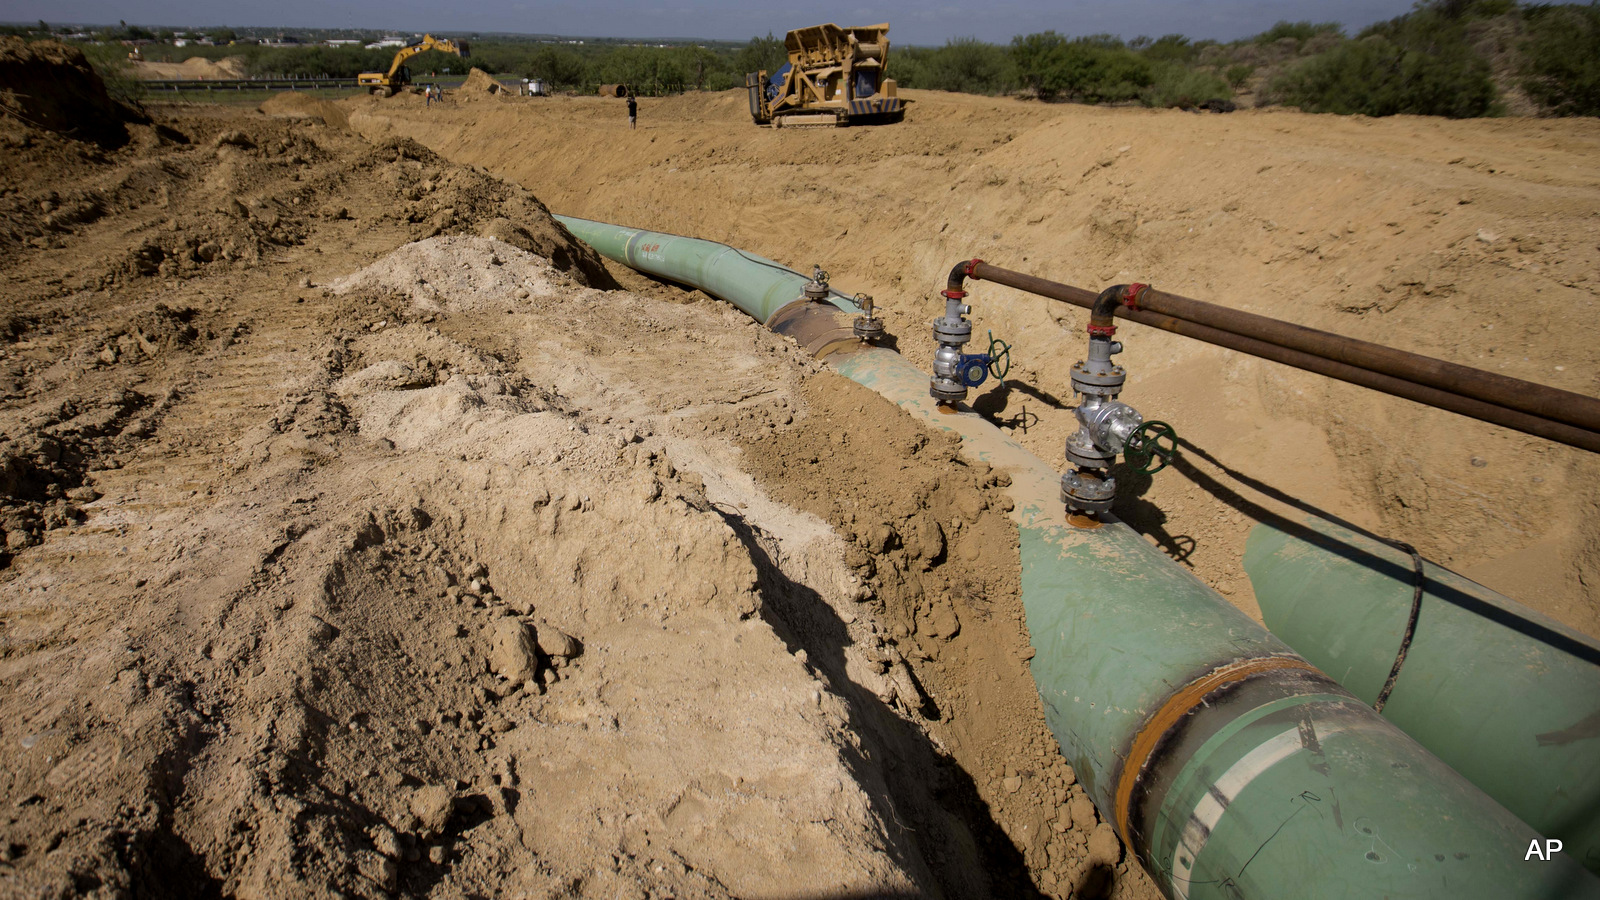 Pipelines to carrying gas from Texas to Mexico, eventually reaching the city of Guanajuato, are laid underground near General Bravo, in Nuevo Leon state, Mexico.